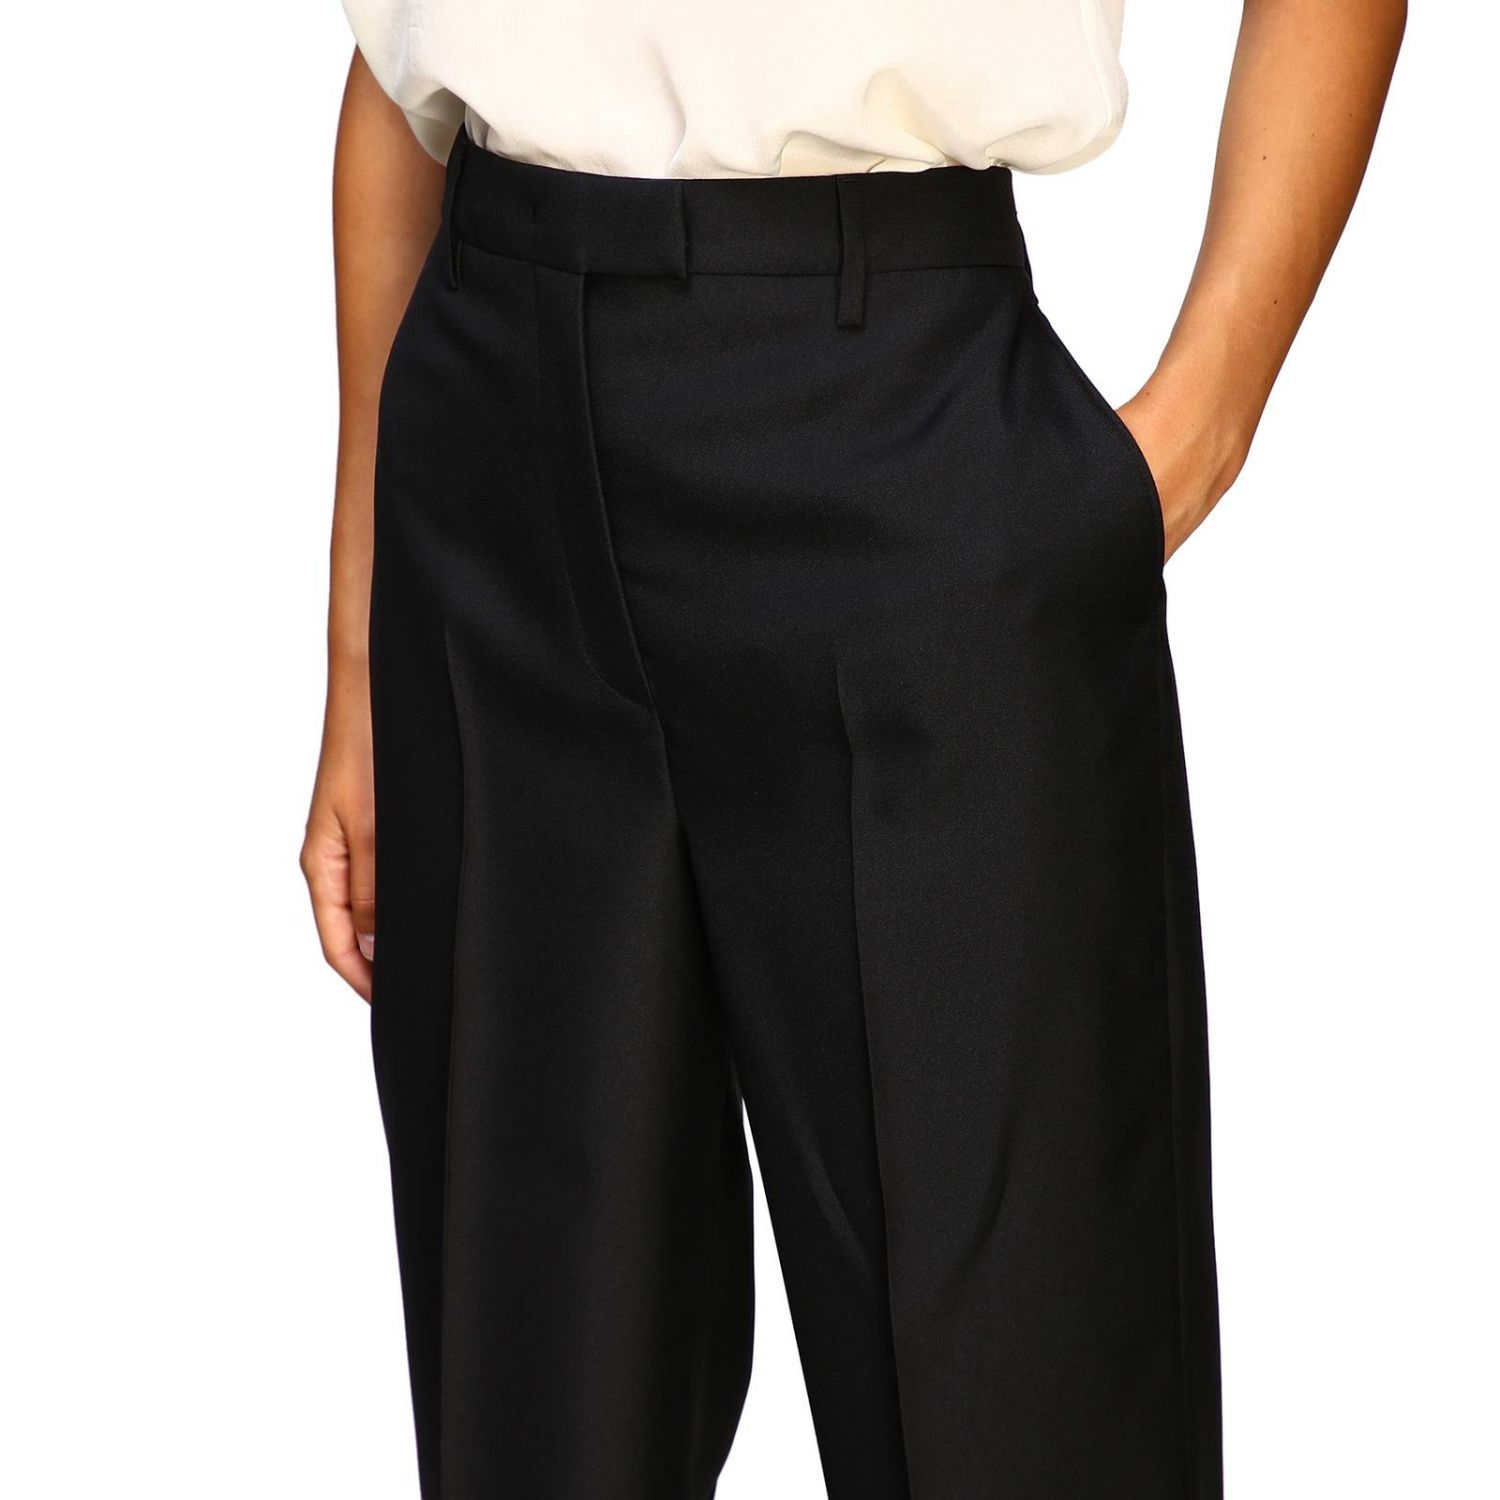 Prada classic high-waisted pants black 5